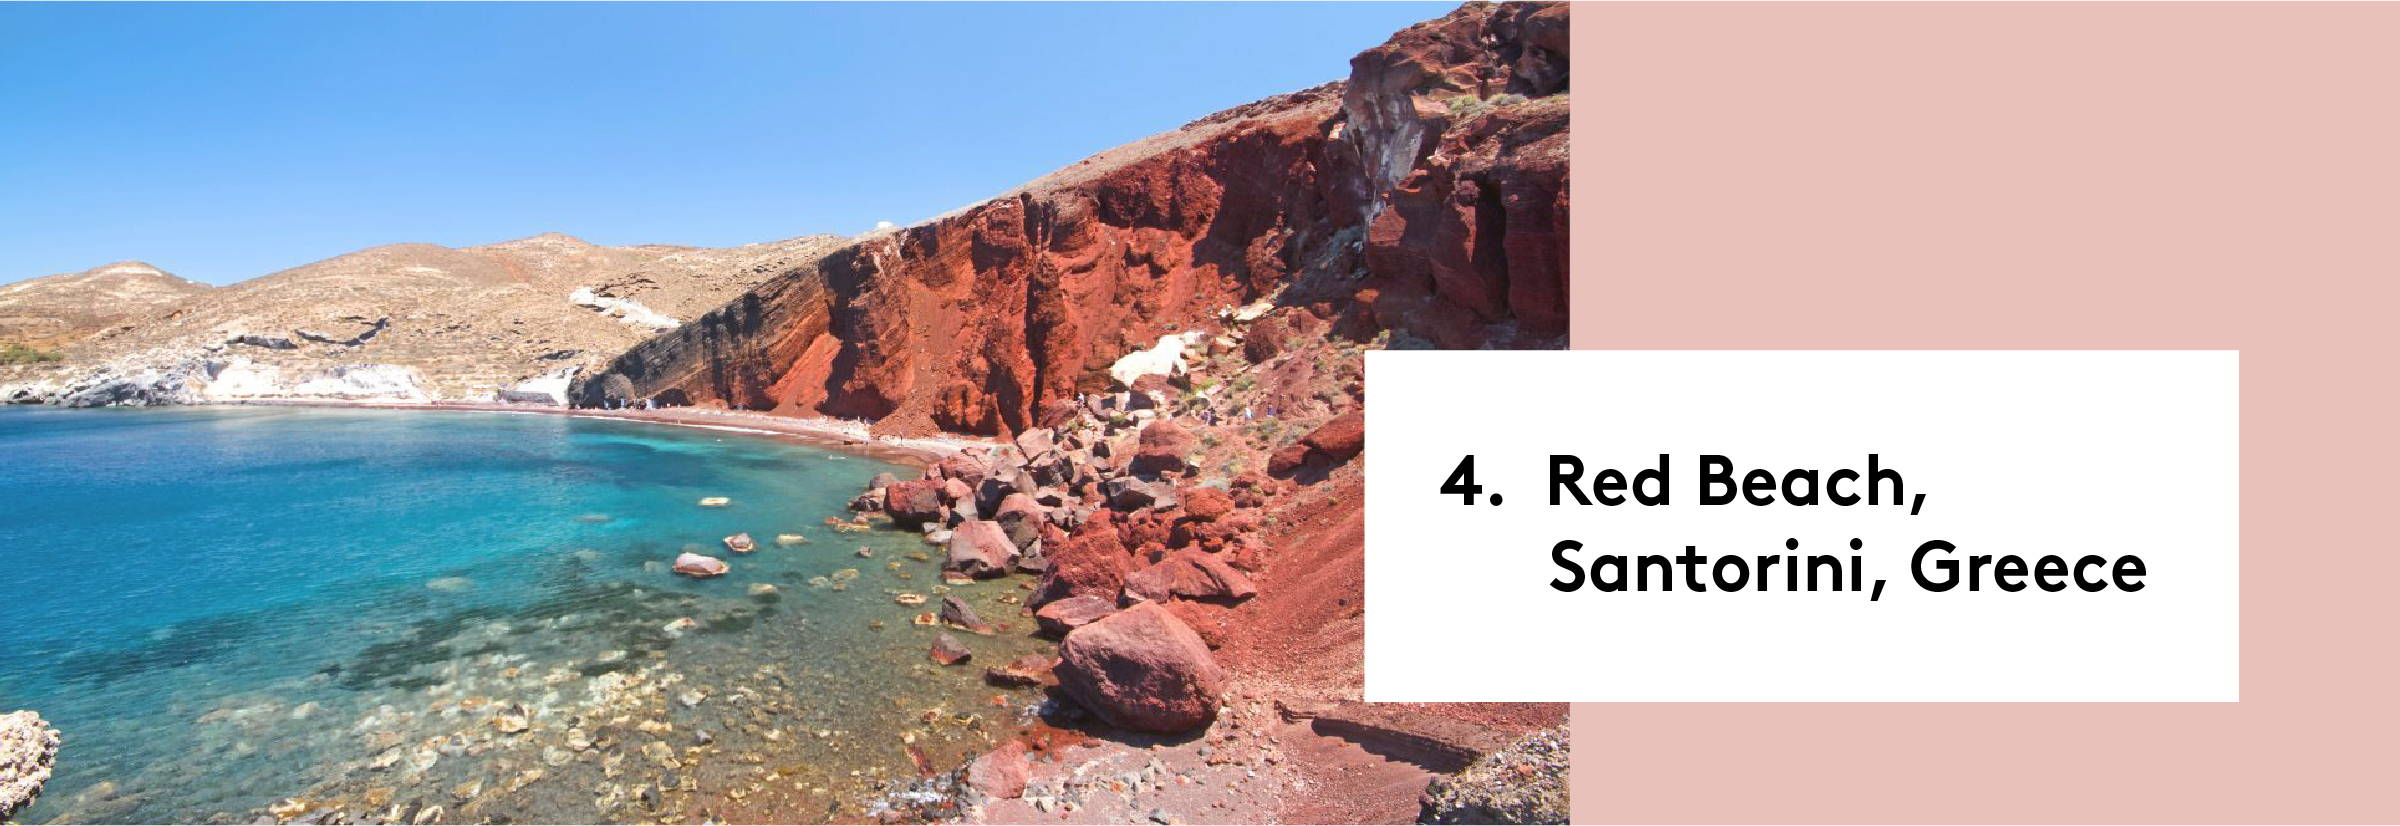 Red Beach, Santorini, Greece